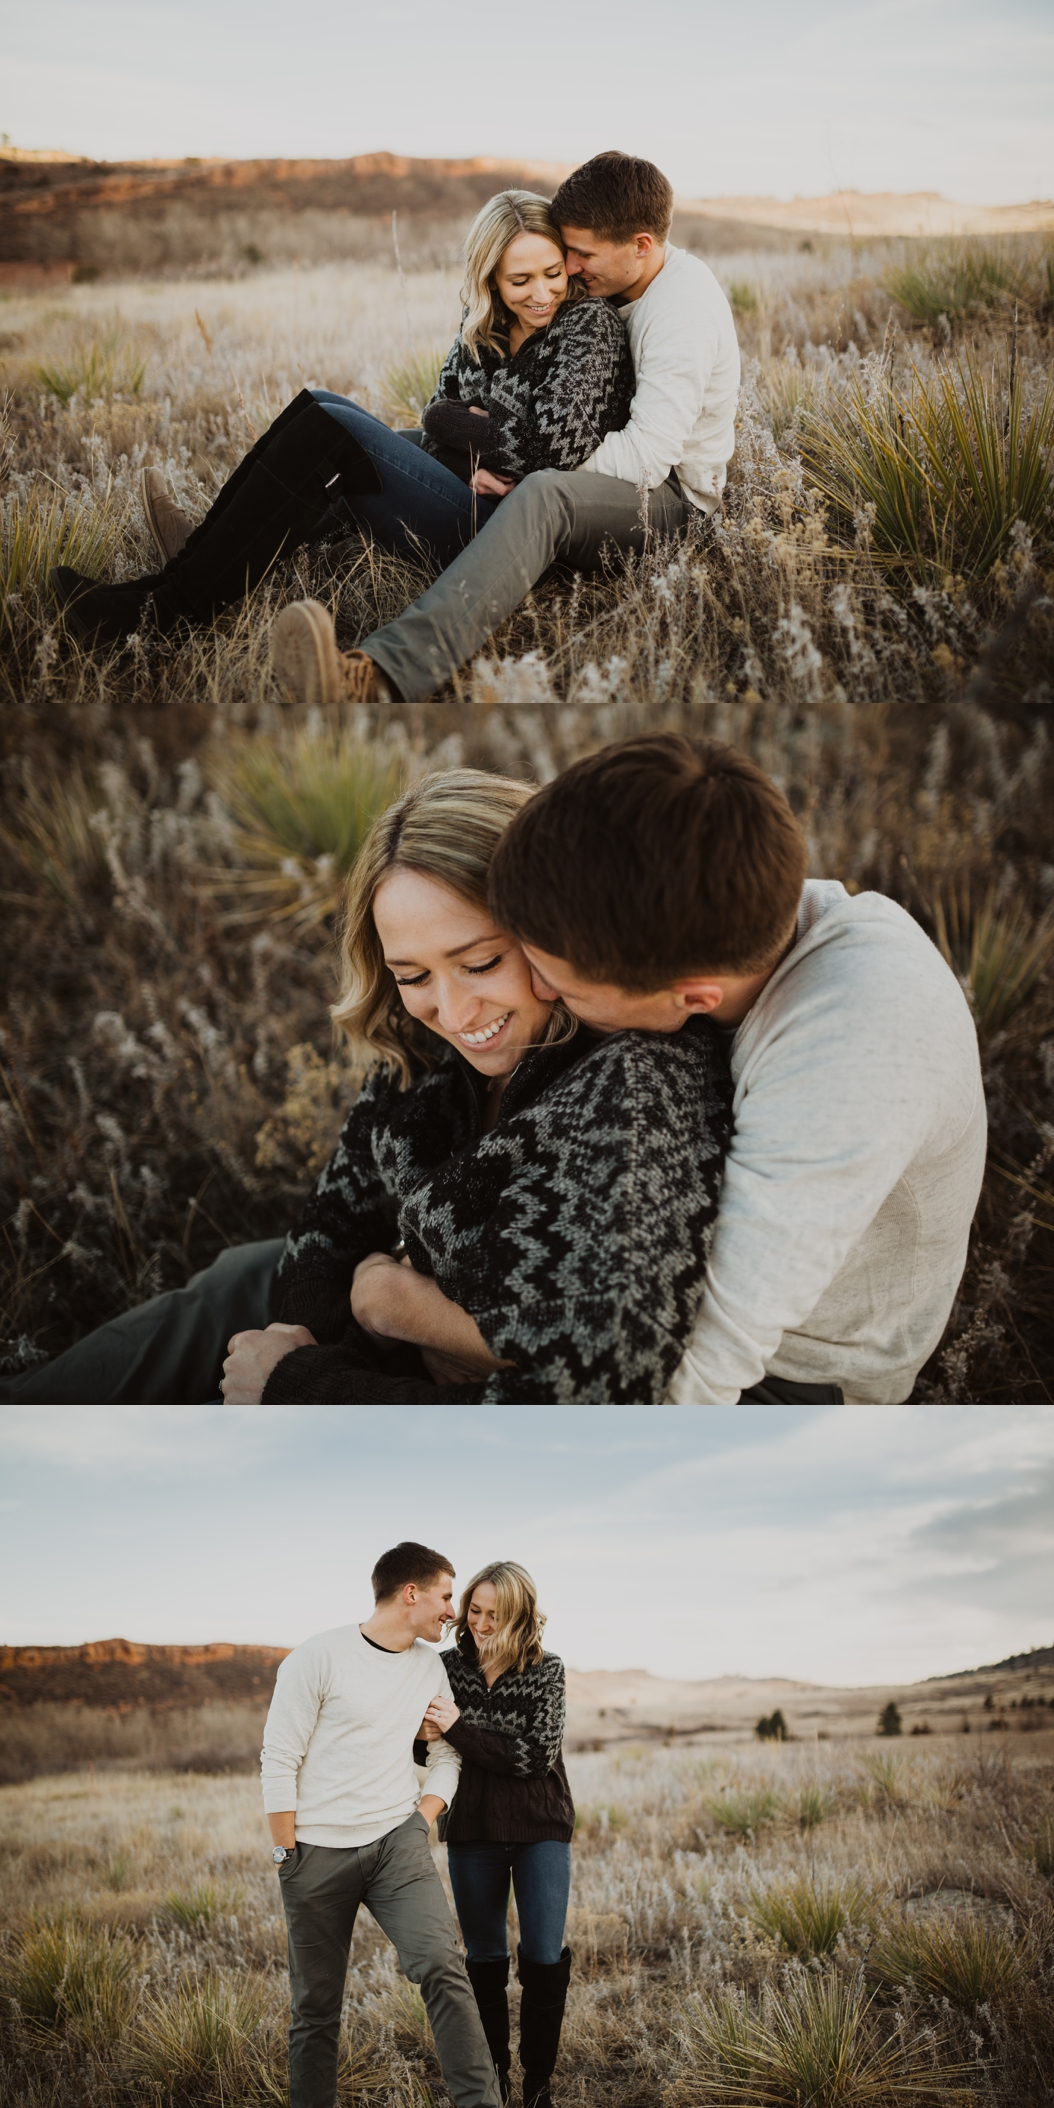 Ashleecrowdenphotography_coloradoelopement_coloradoweddingphotographer_0054.jpg